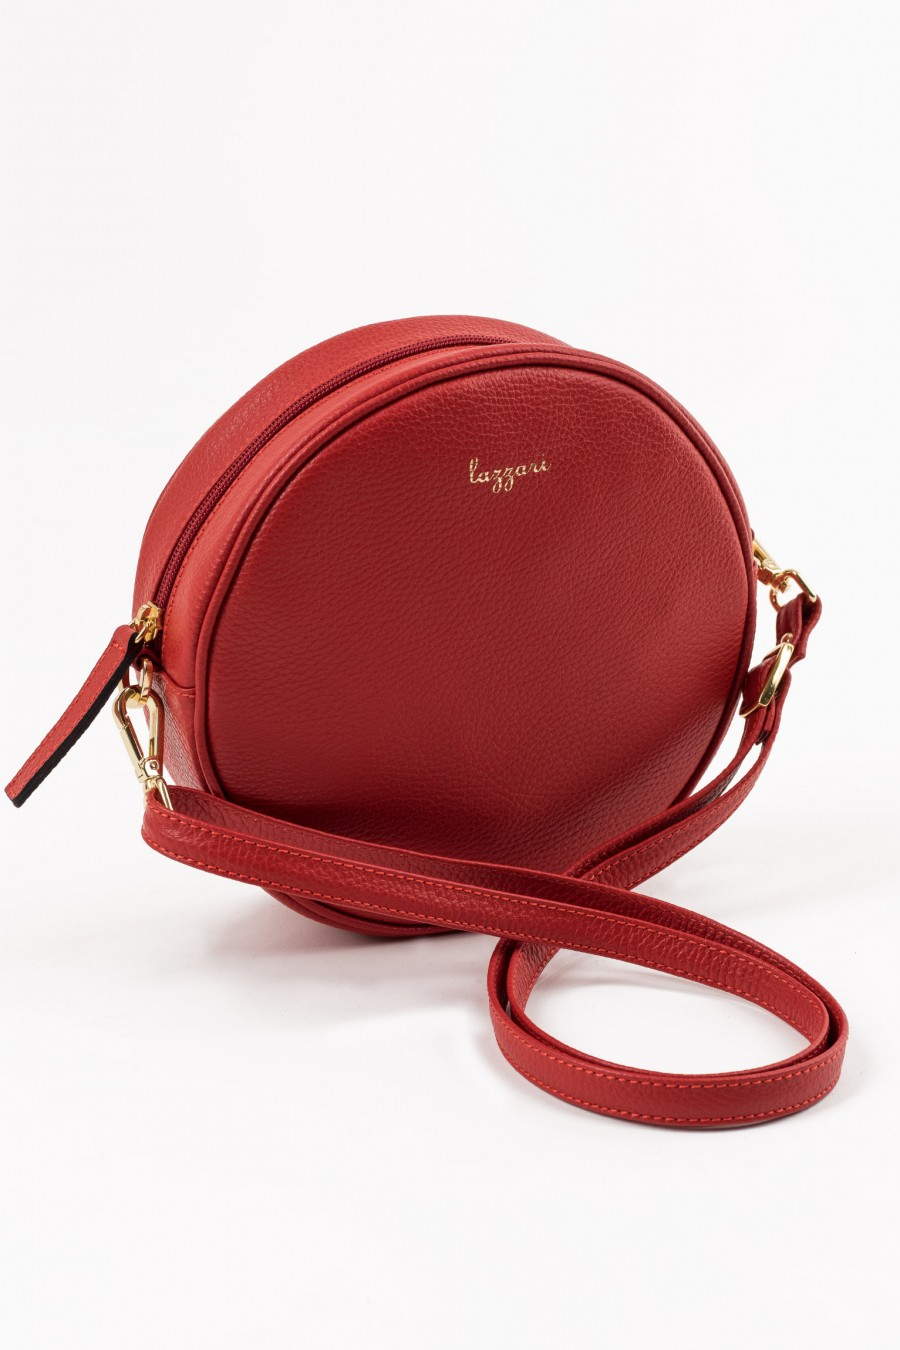 Round red bag